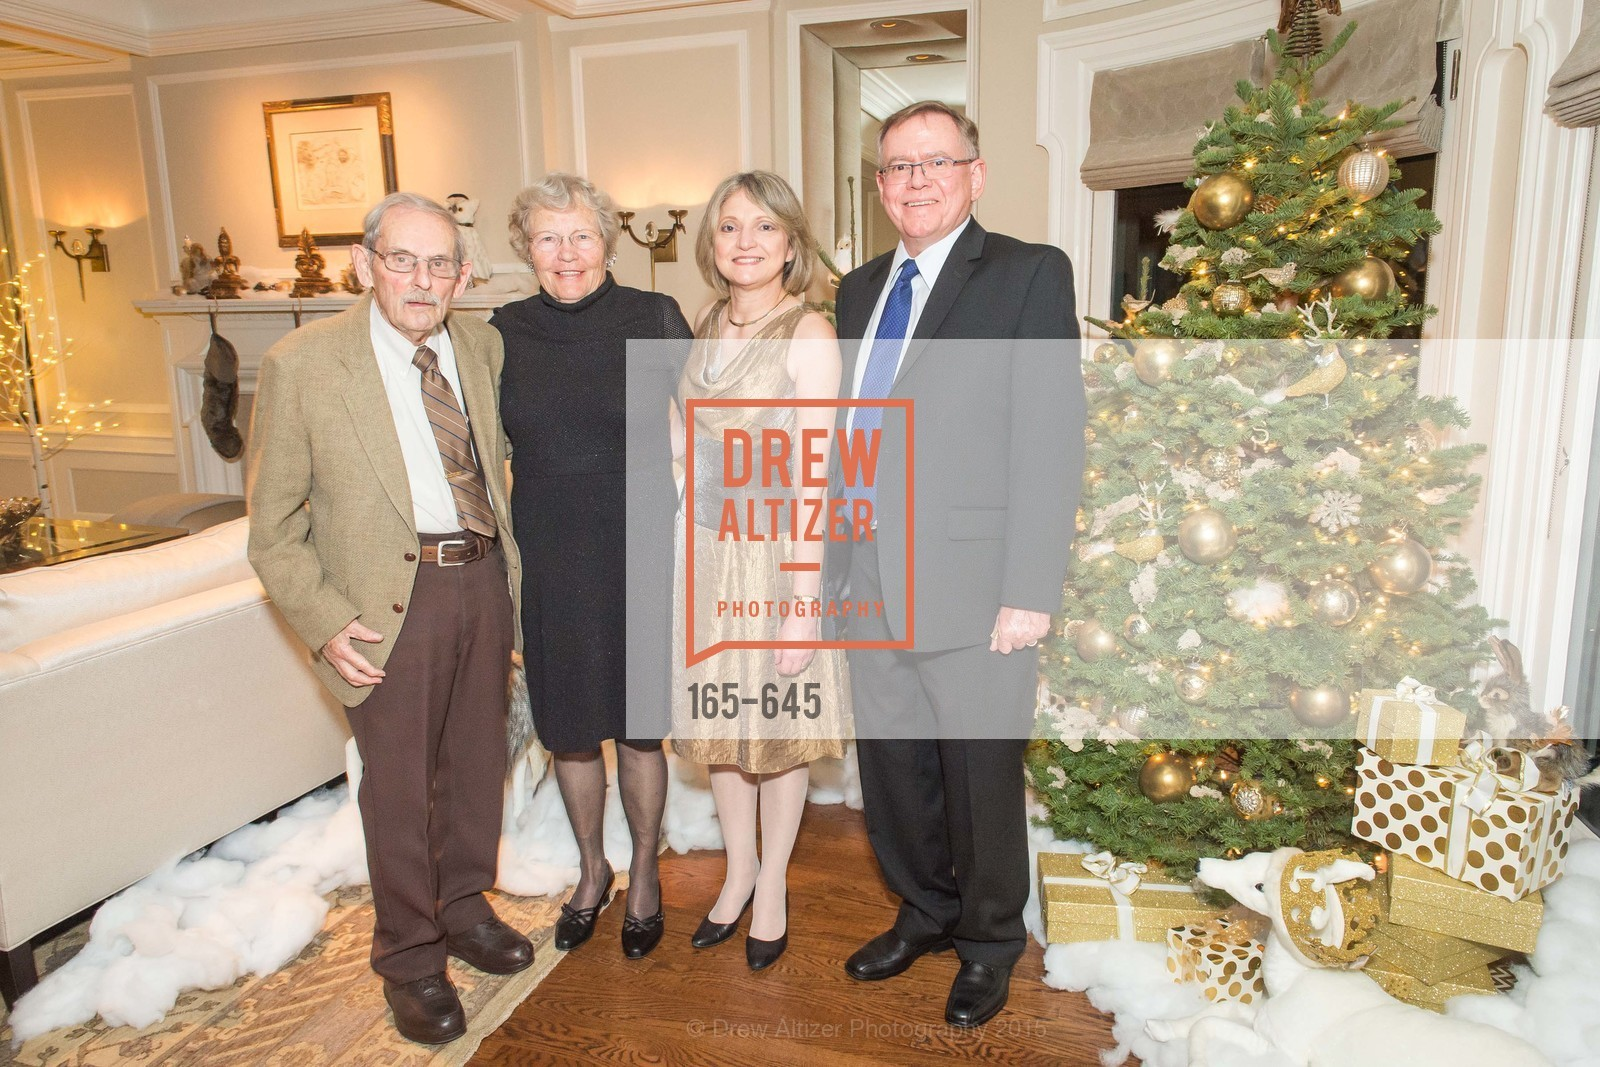 Clarion Clements, Jean Shuh, Wendy Botha, Louie Botha, Atherton Holiday Party, Private Residence, December 12th, 2015,Drew Altizer, Drew Altizer Photography, full-service agency, private events, San Francisco photographer, photographer california